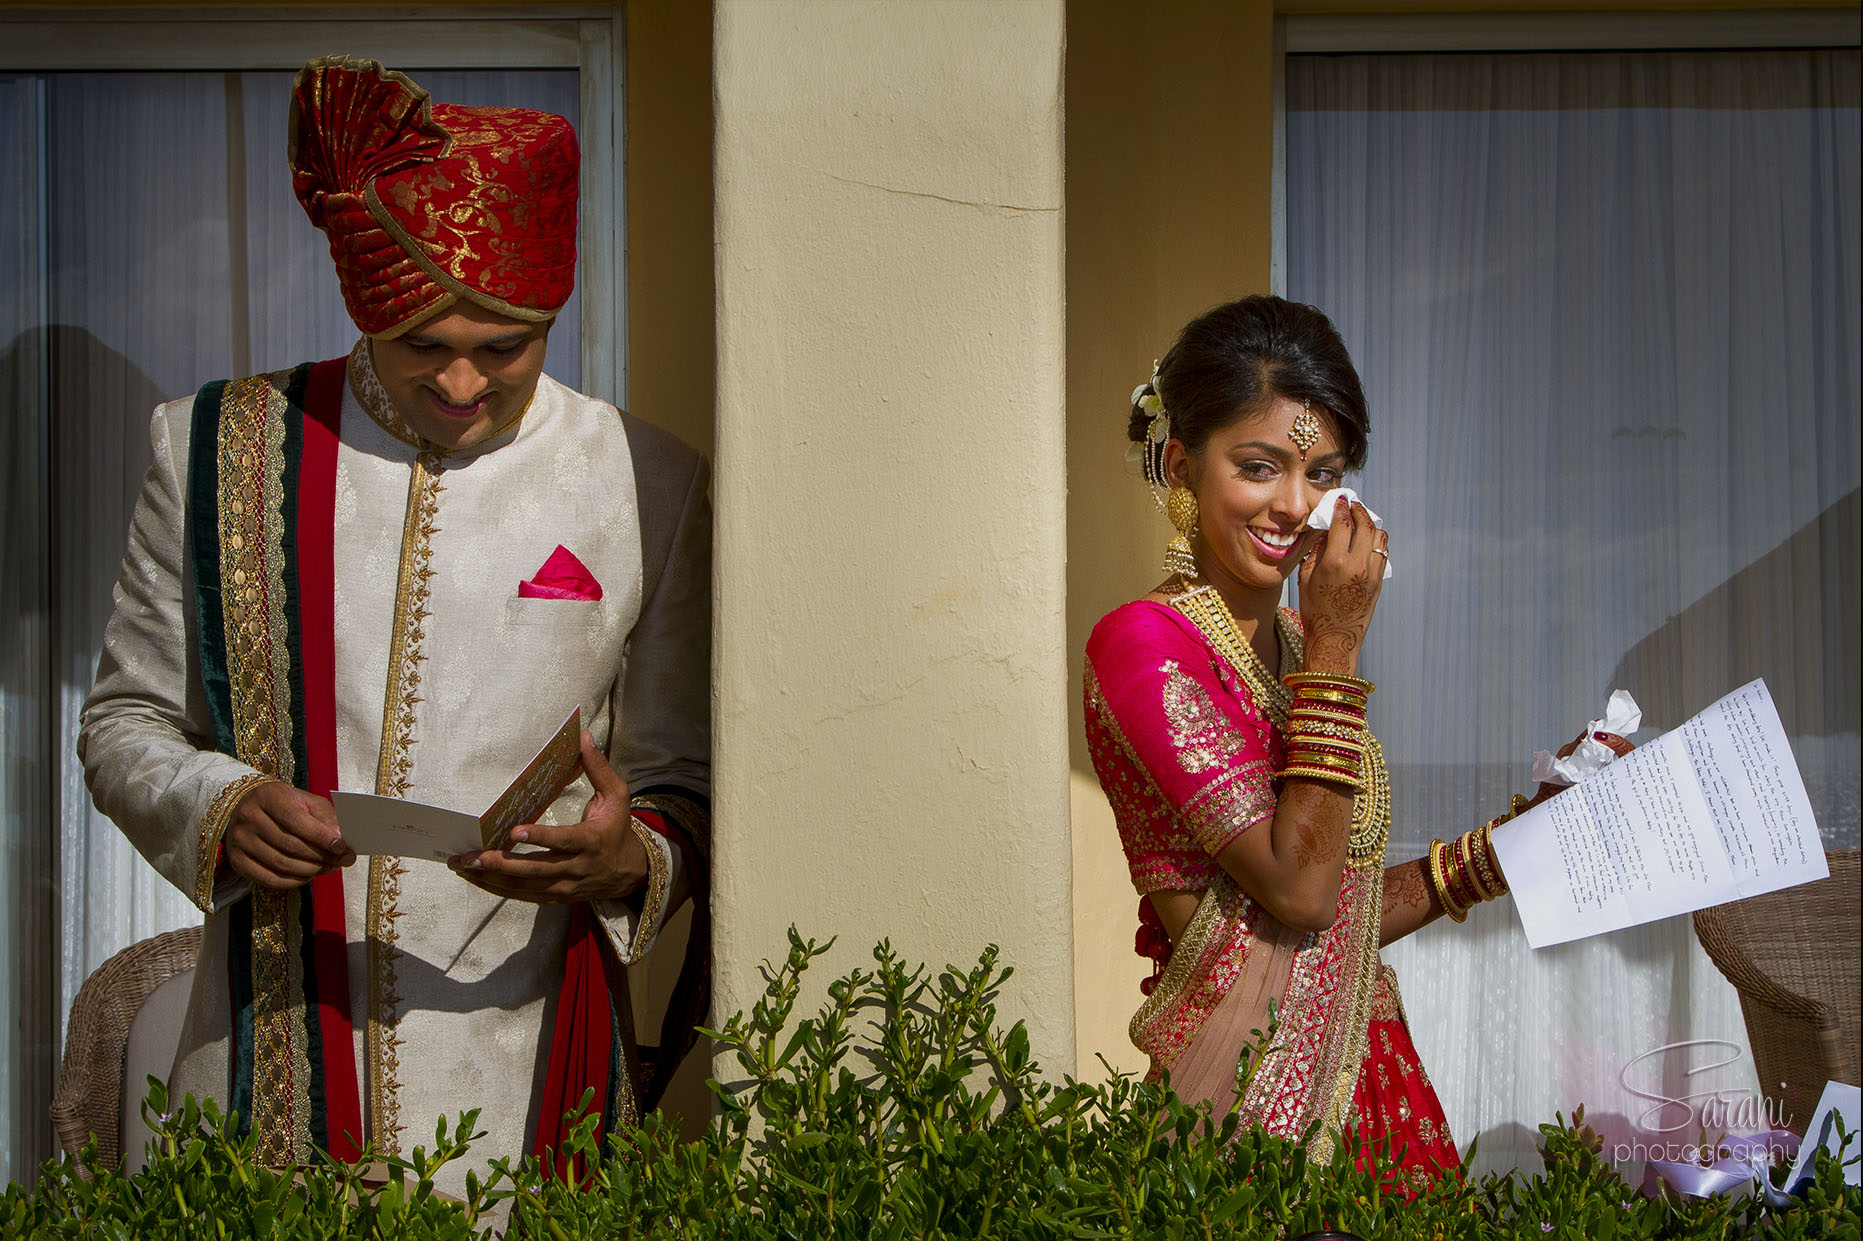 mexico-weddings-krishna-mihir-02.jpg